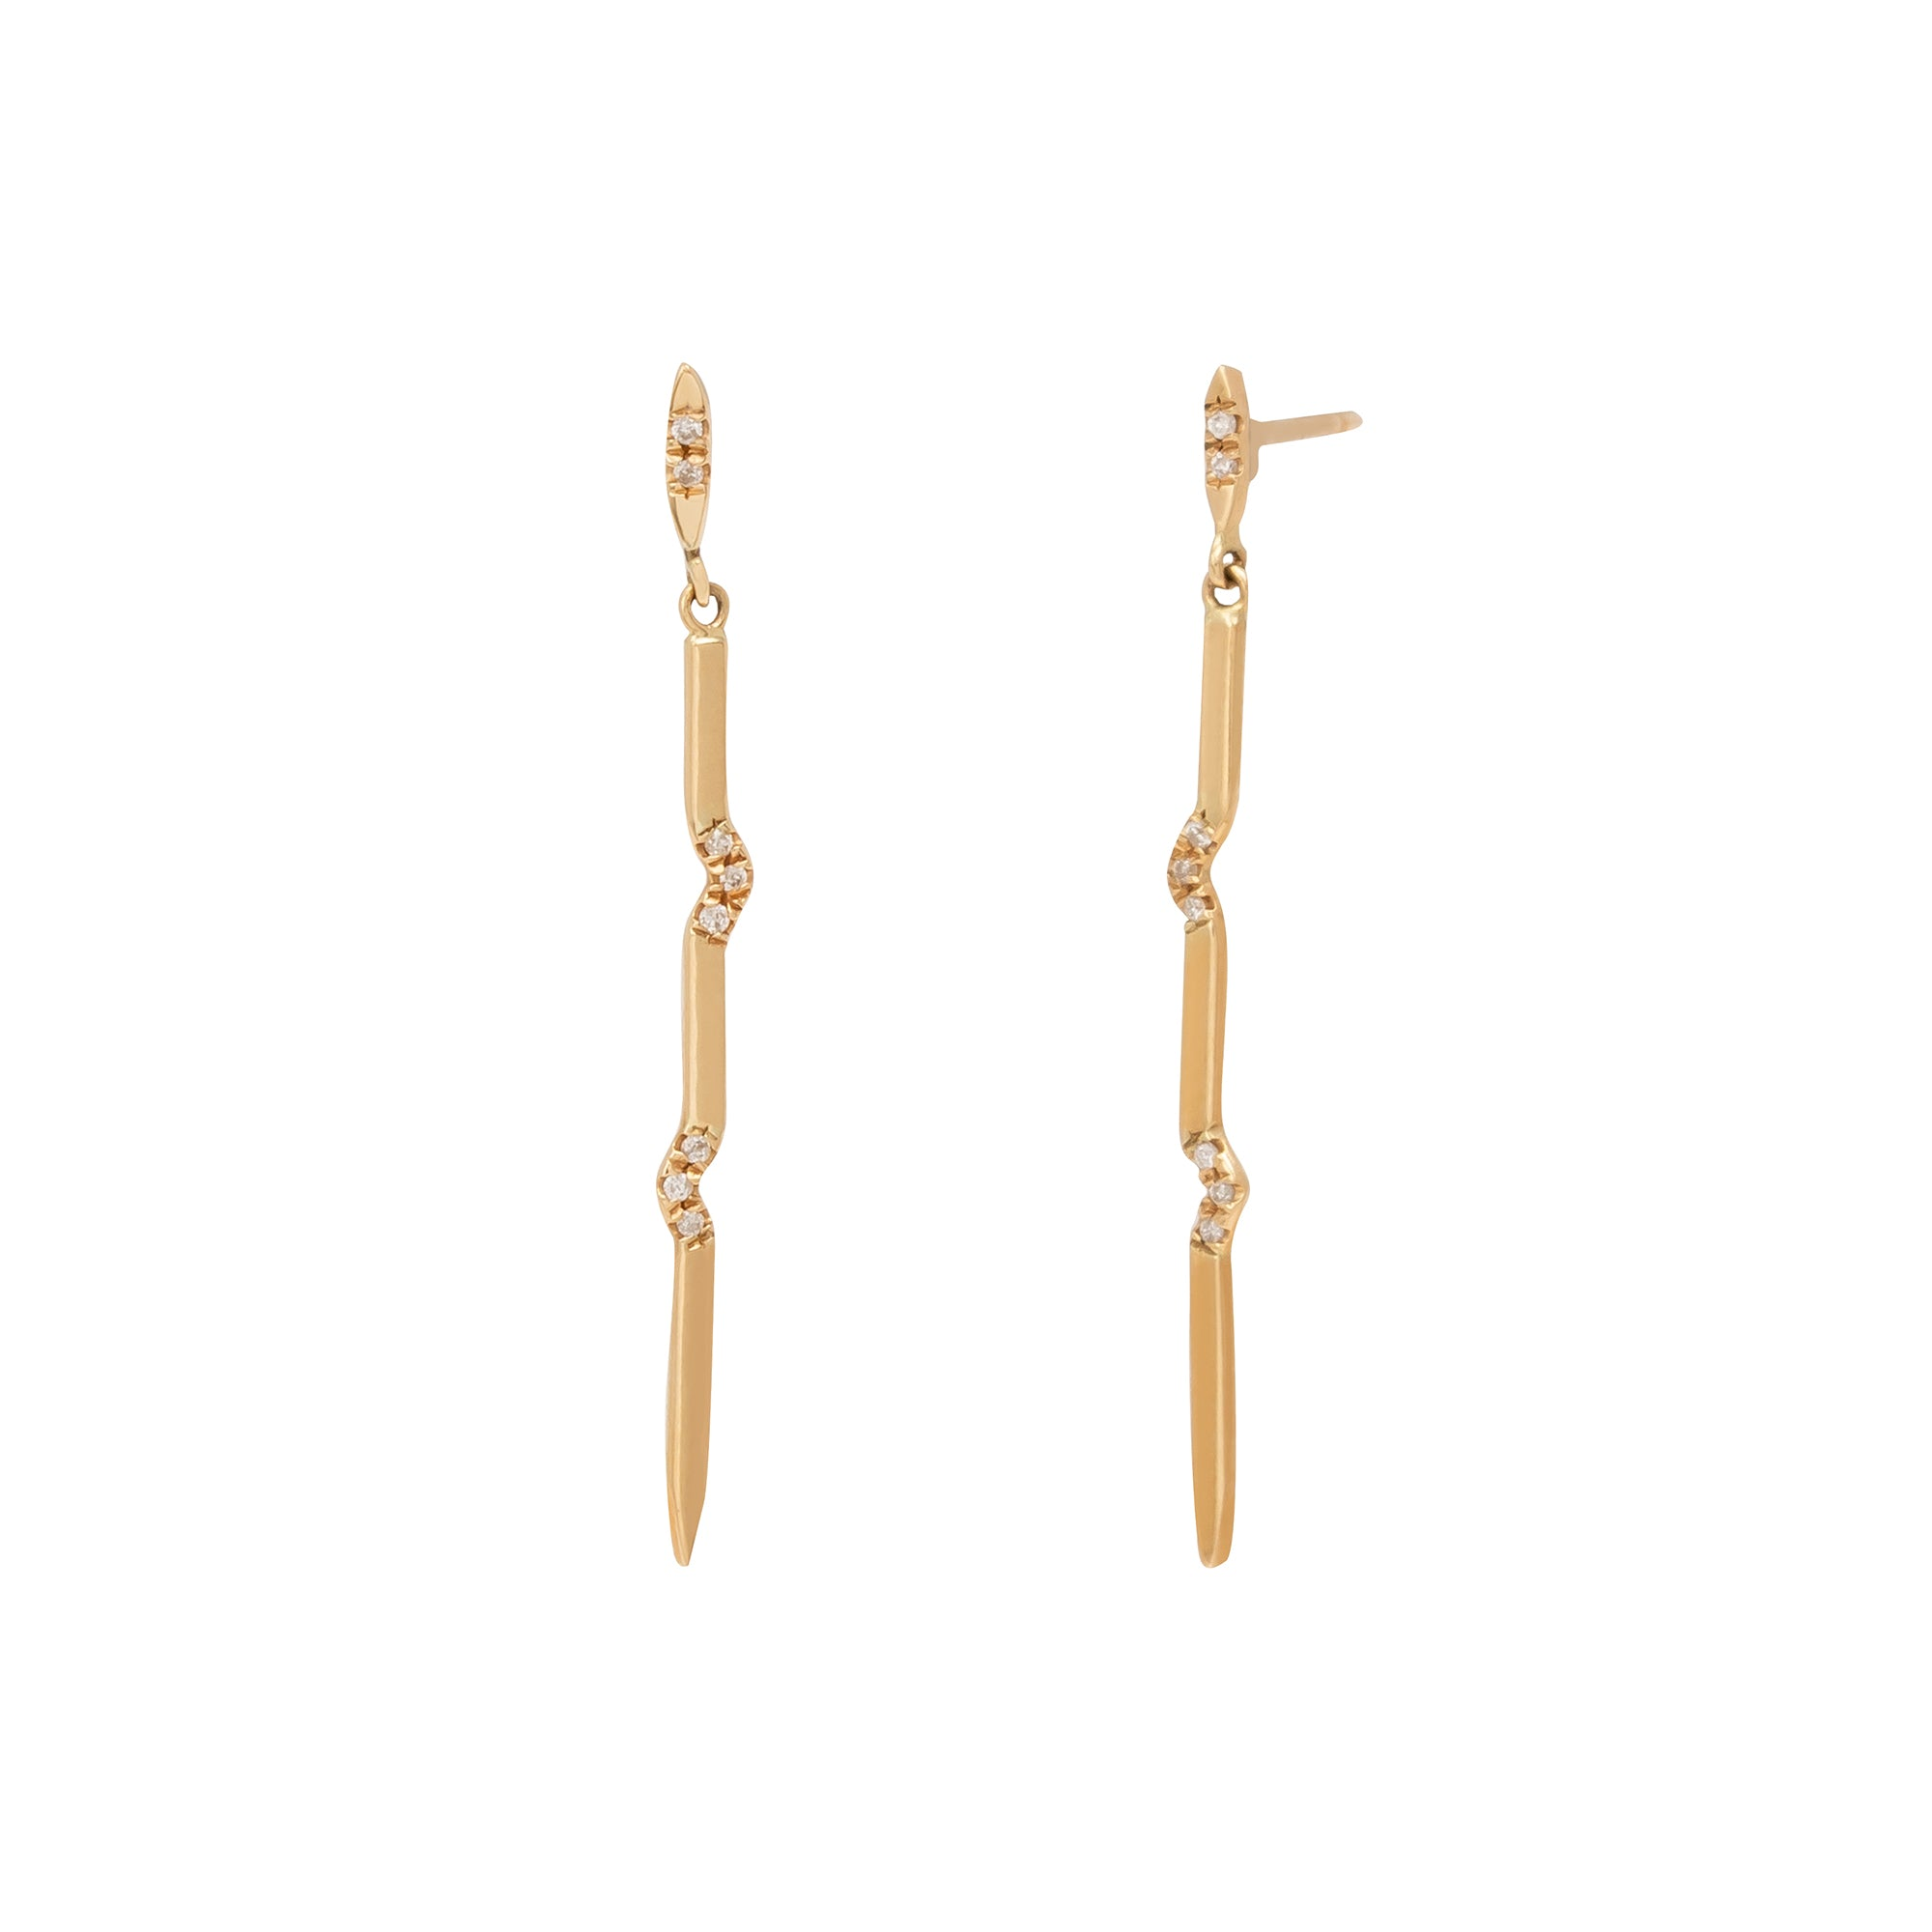 Xiao Wang Long Gravity Earrings - Champagne & Pave Diamonds - Earrings - Broken English Jewelry